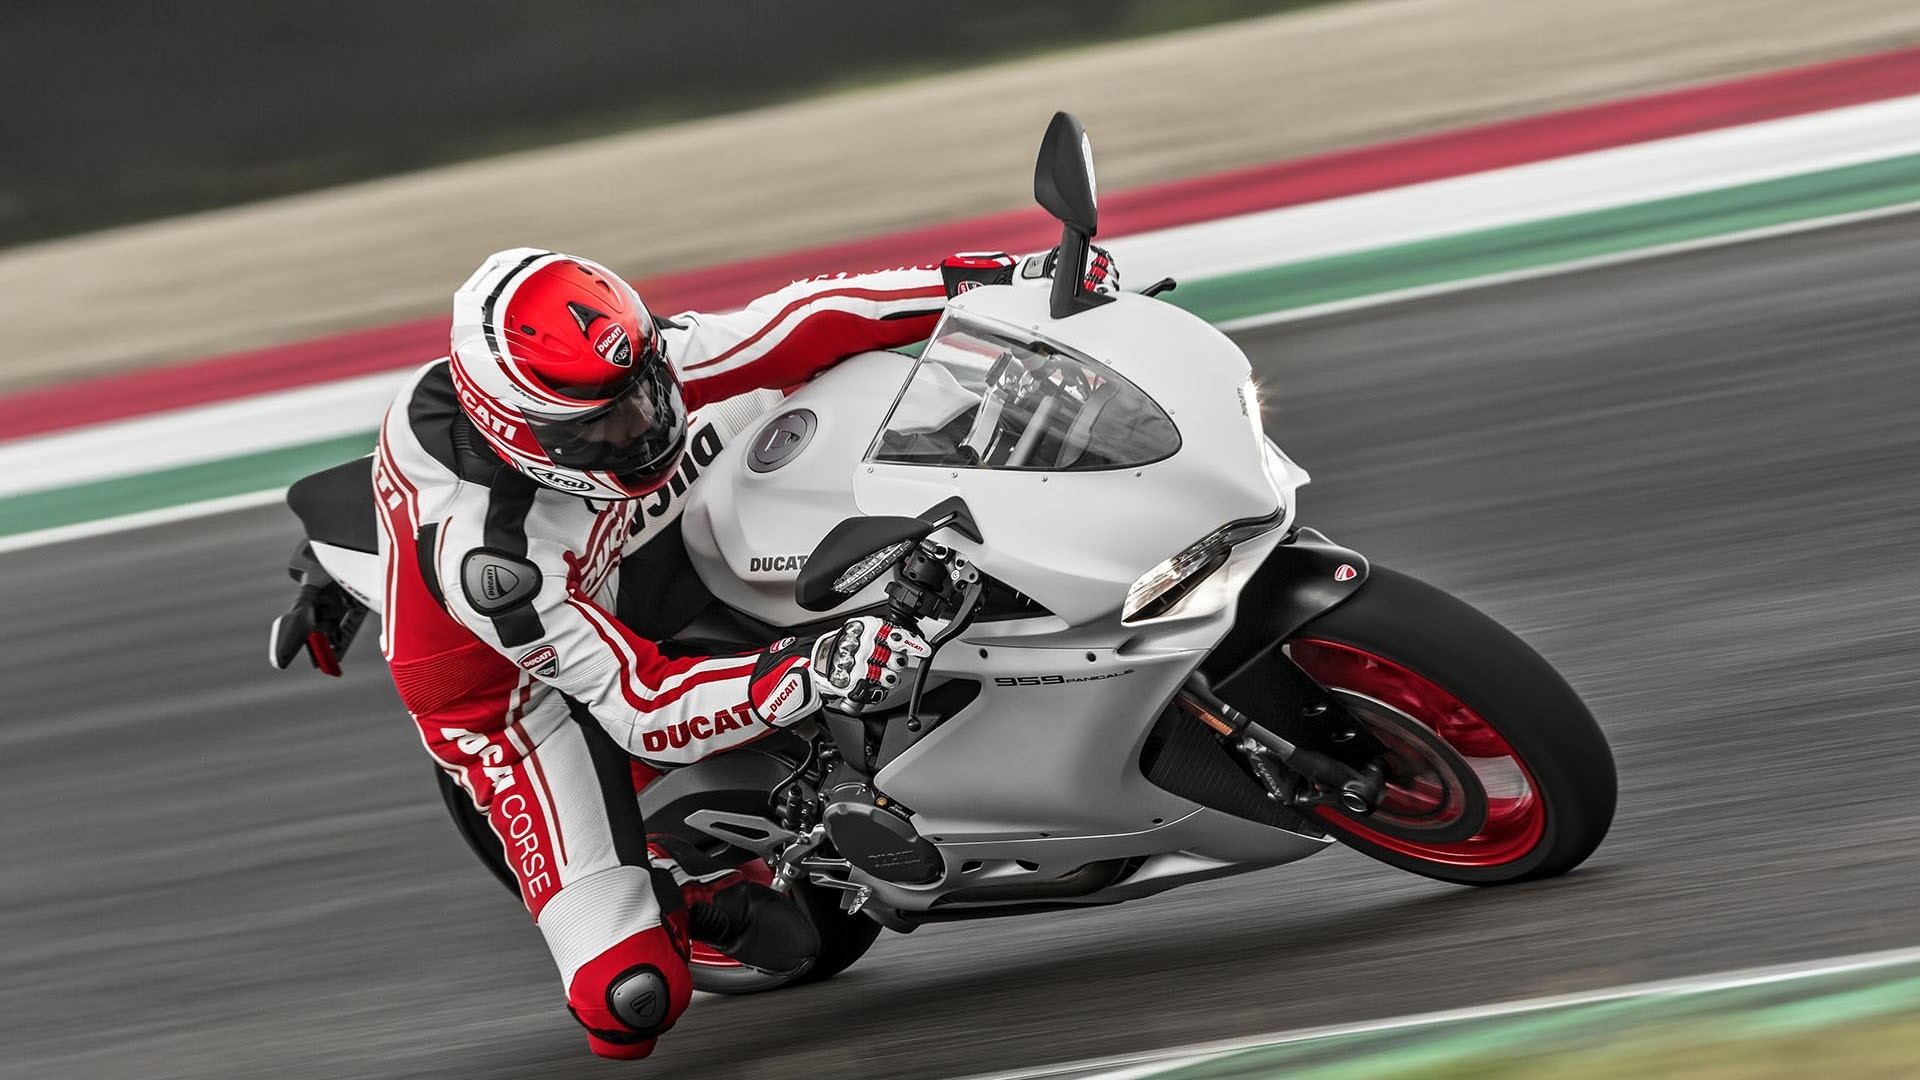 Track Car Wallpaper Unique Ducati Panigale V4s Motorcycles To Sell On Ebay